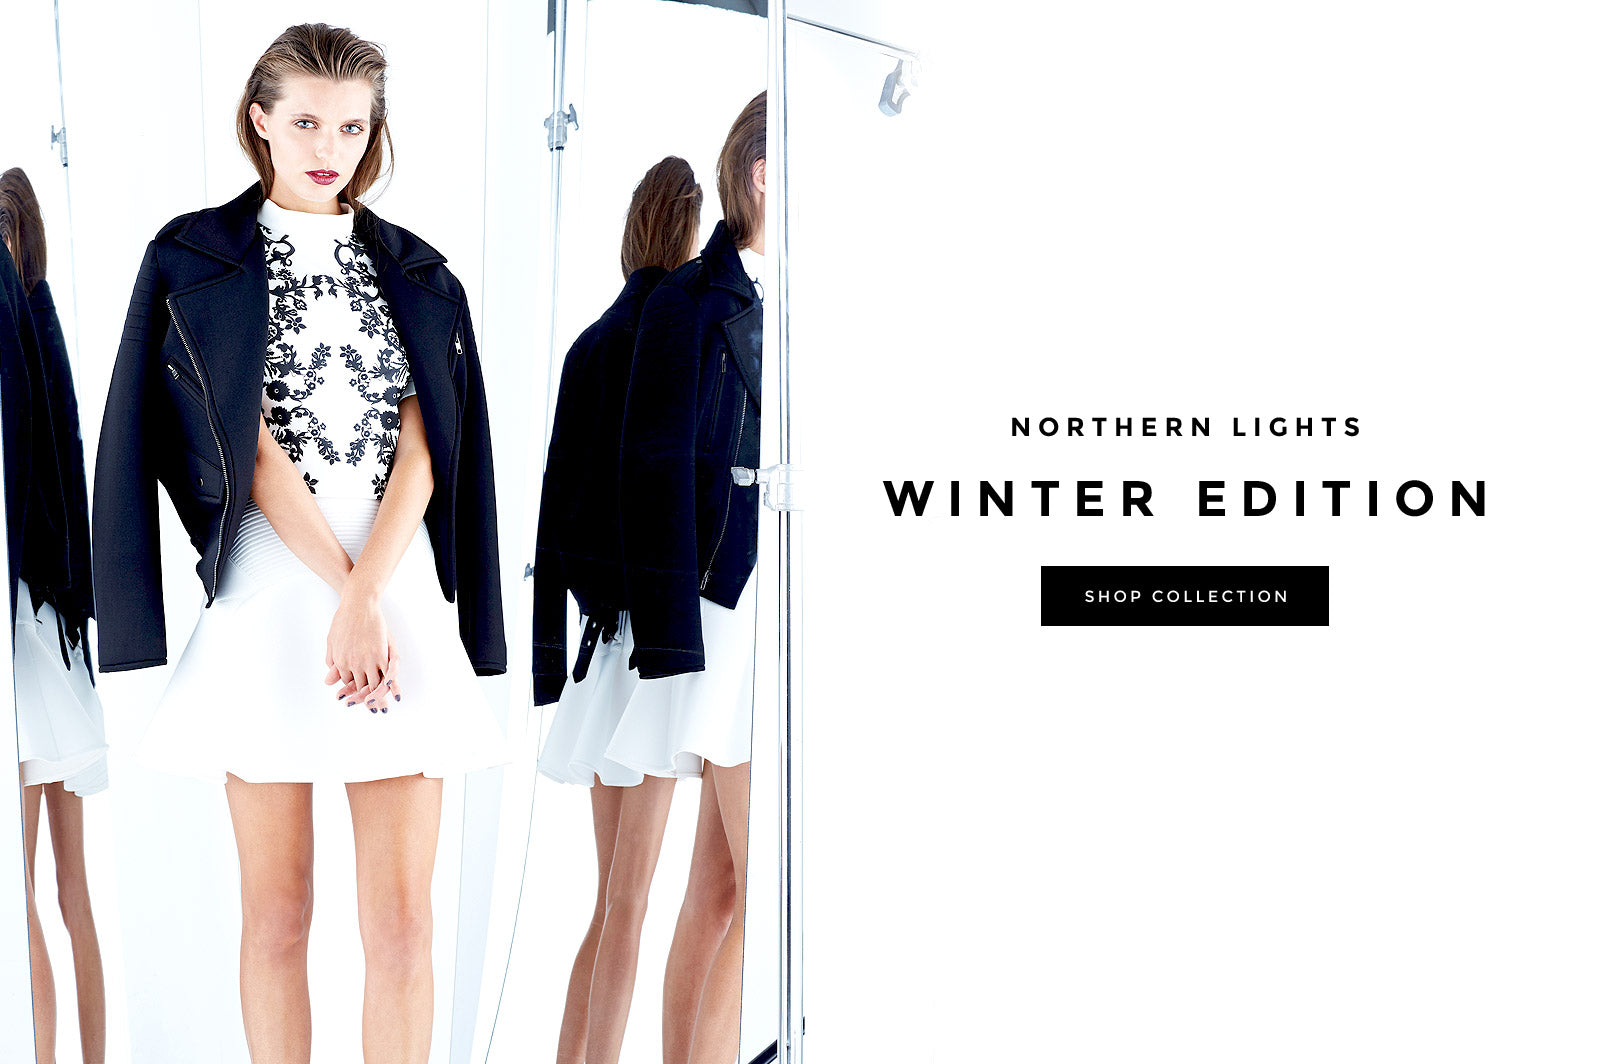 Northern Lights by Minty Meets Munt